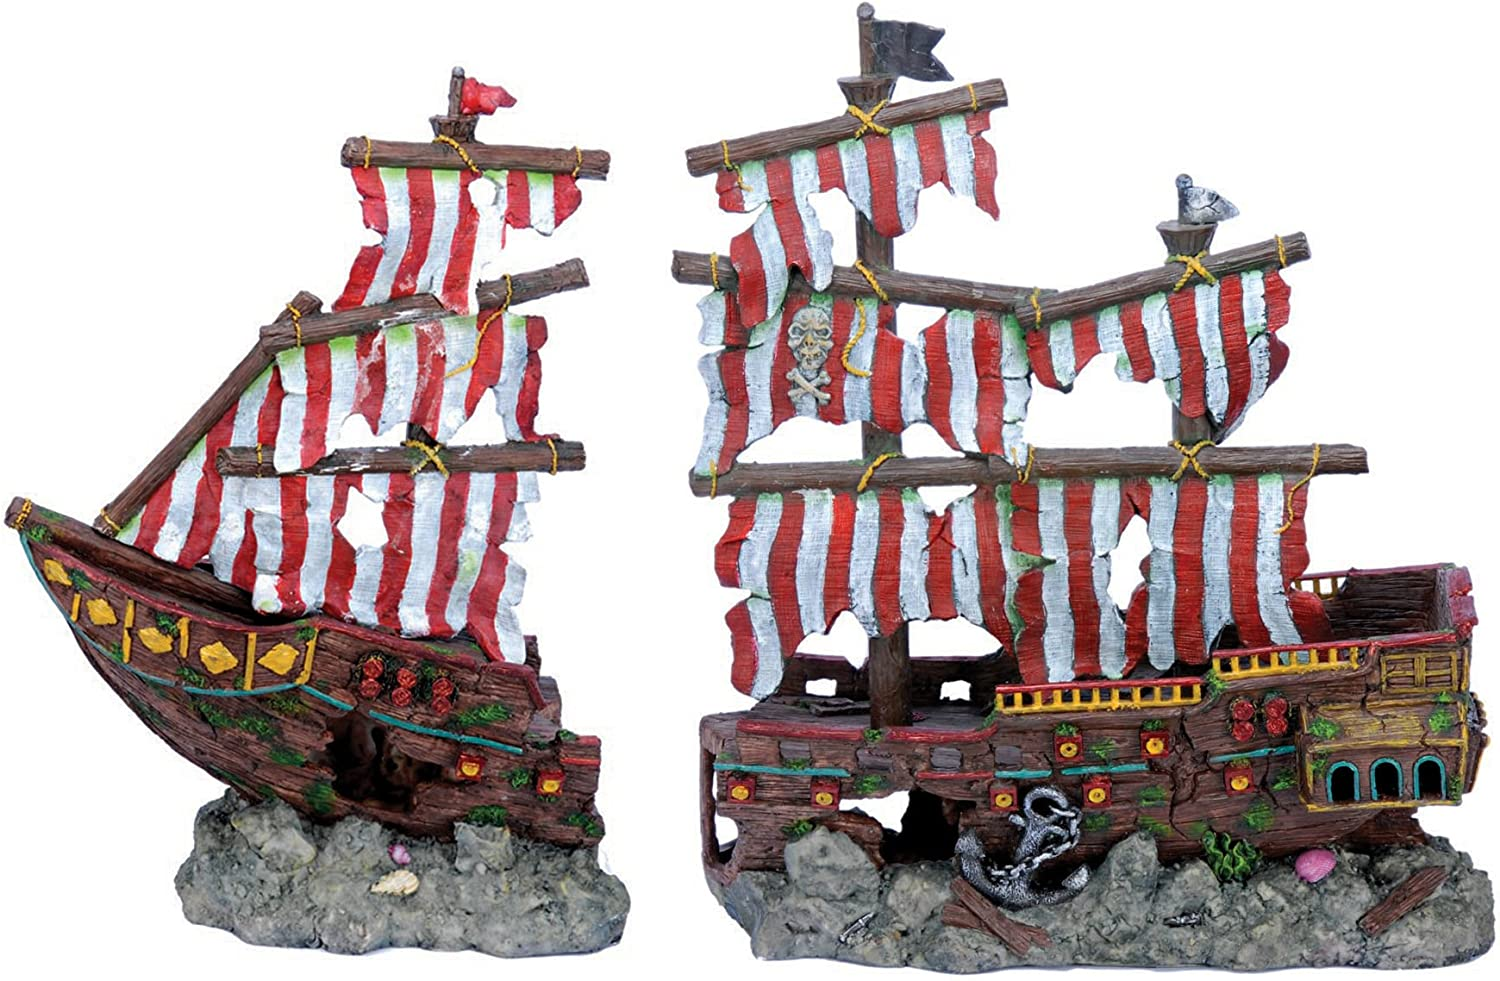 Penn-Plax Striped Pirate Ship